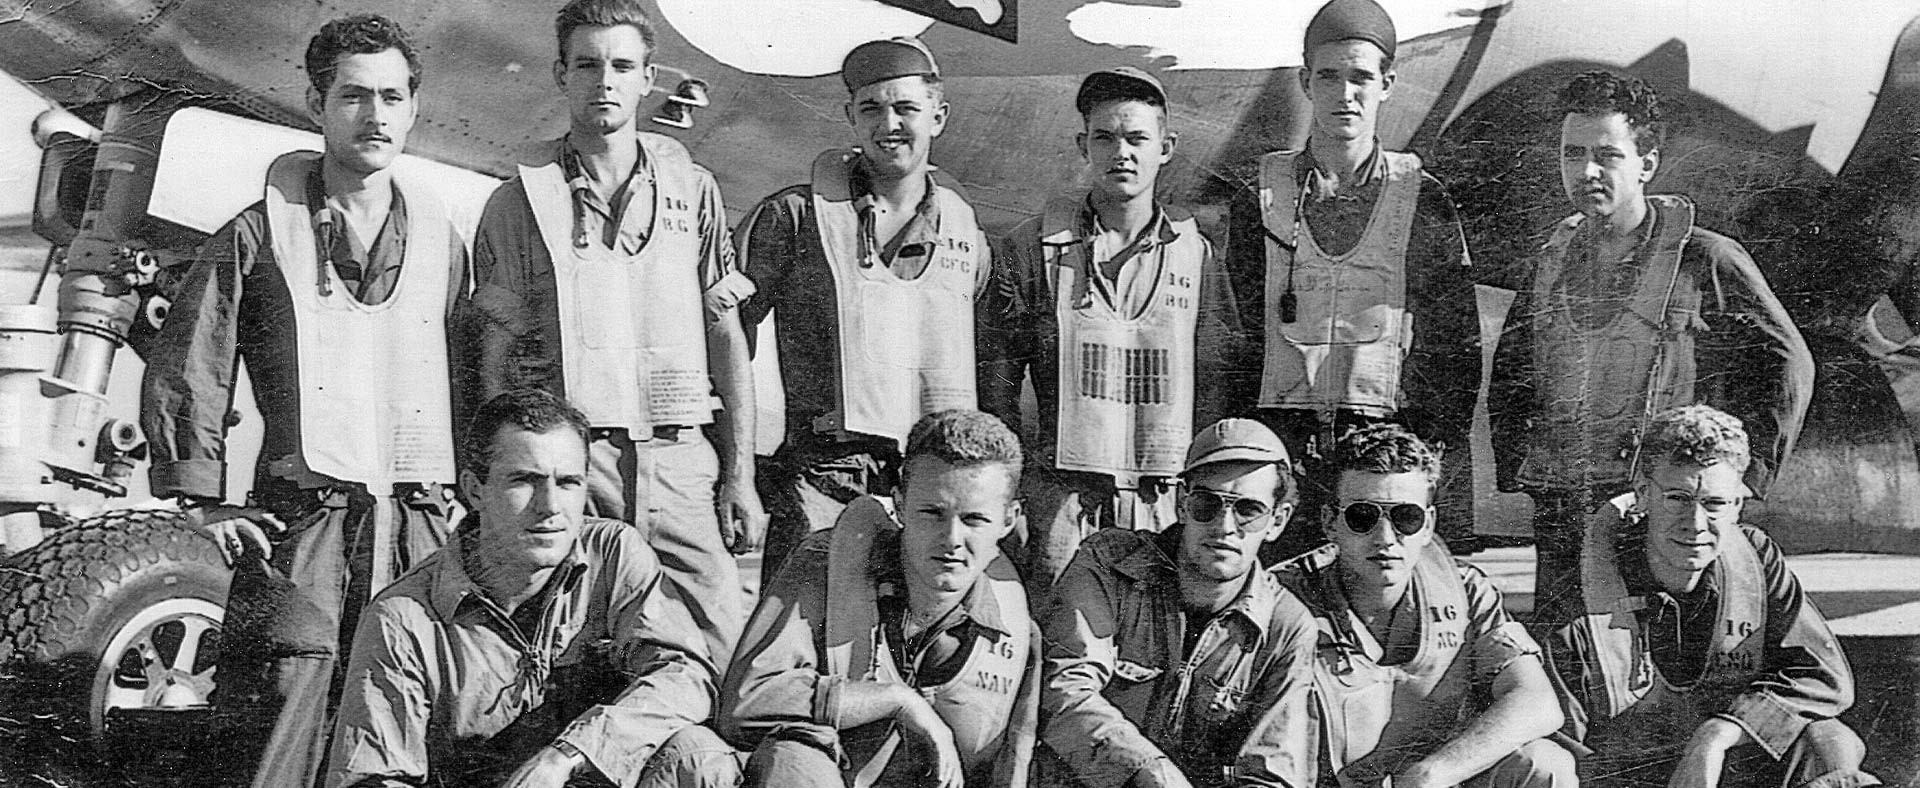 101st Crew - 6th-Bomb-Group. Photo: ©Eichelman. All Rights Reserved